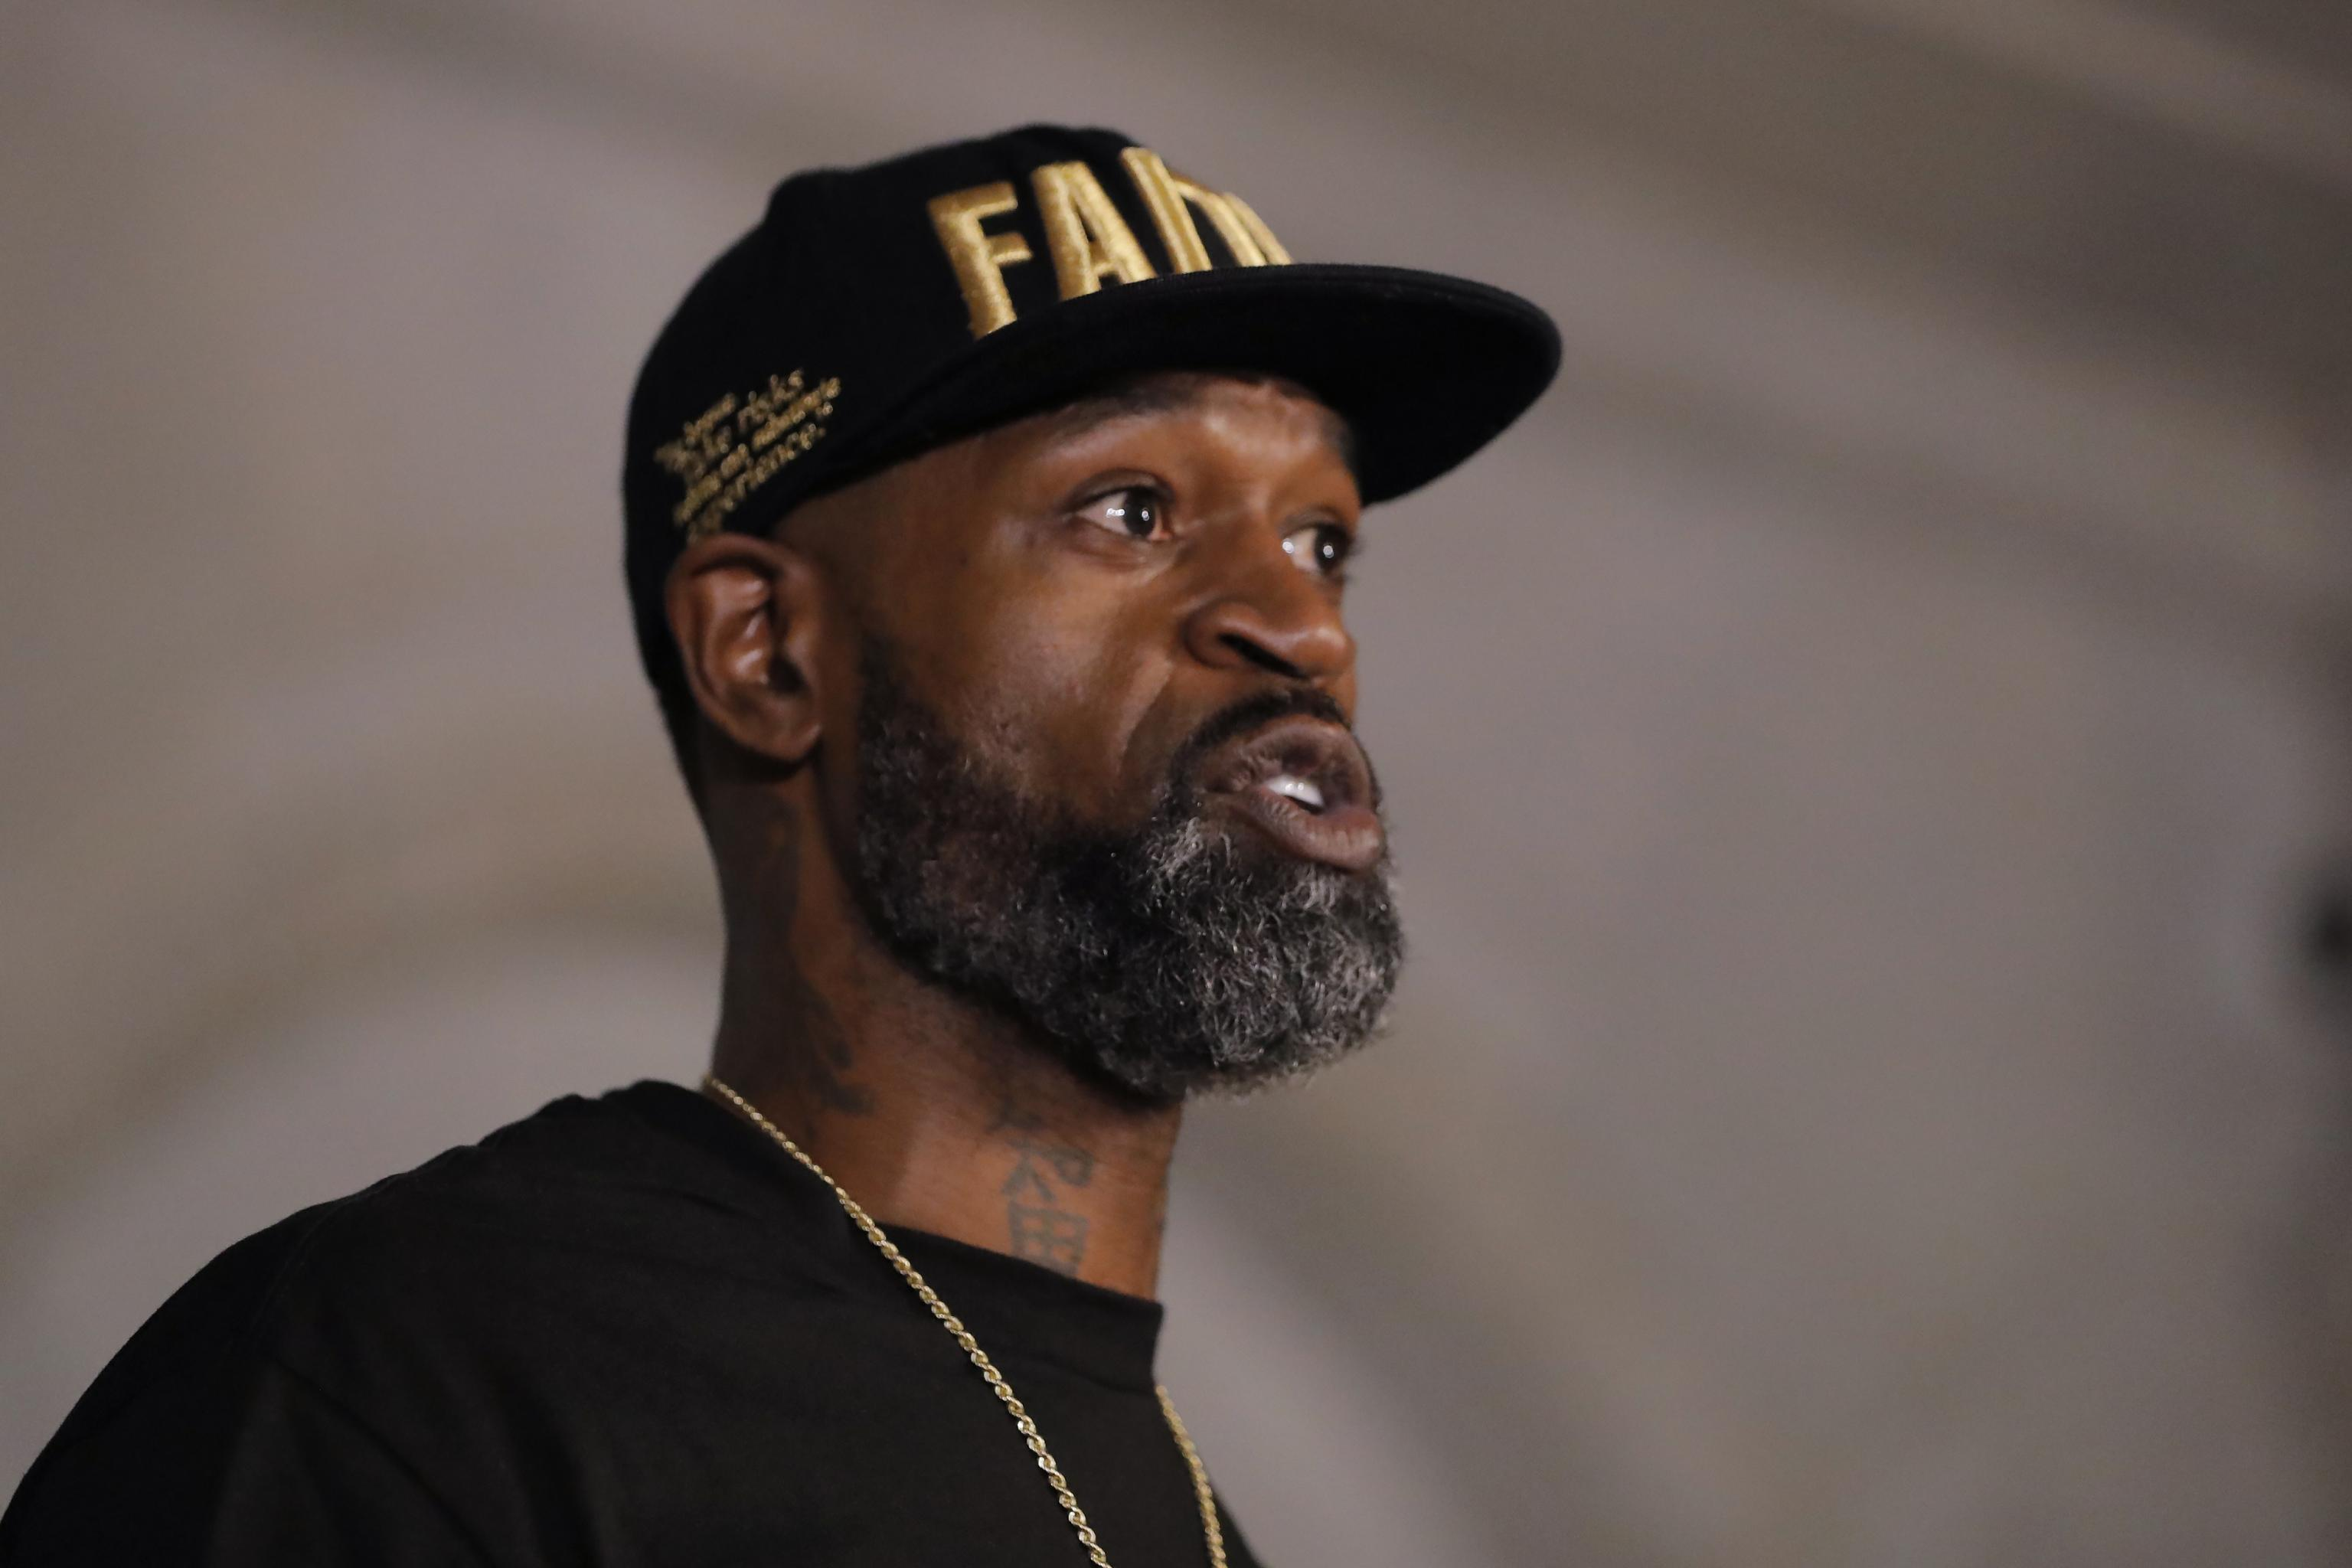 Stephen Jackson Defends Rachel Nichols Amid Controversy, Says ESPN Gave Maria Taylor 'a Sympathy Job to Make Themselves Look Good'